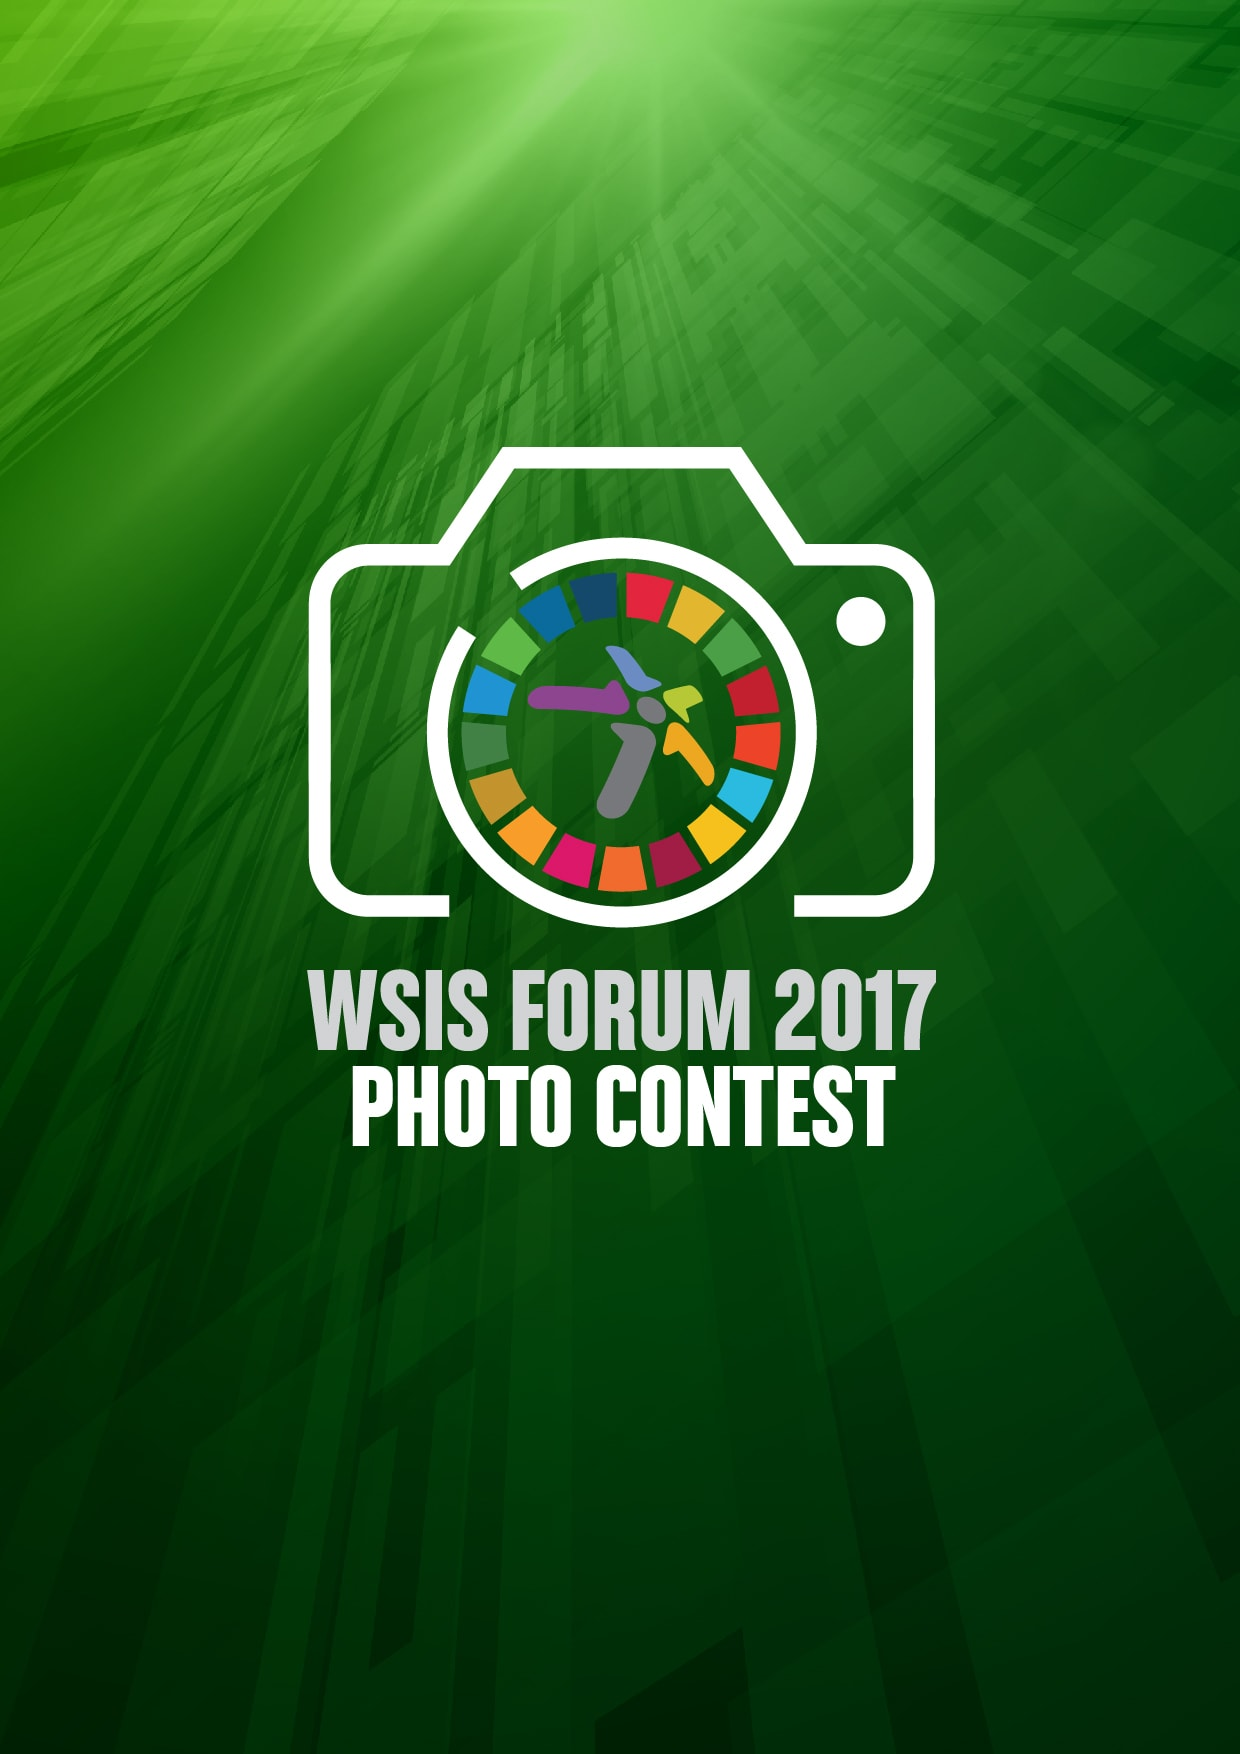 WSIS Photo Contest 2017